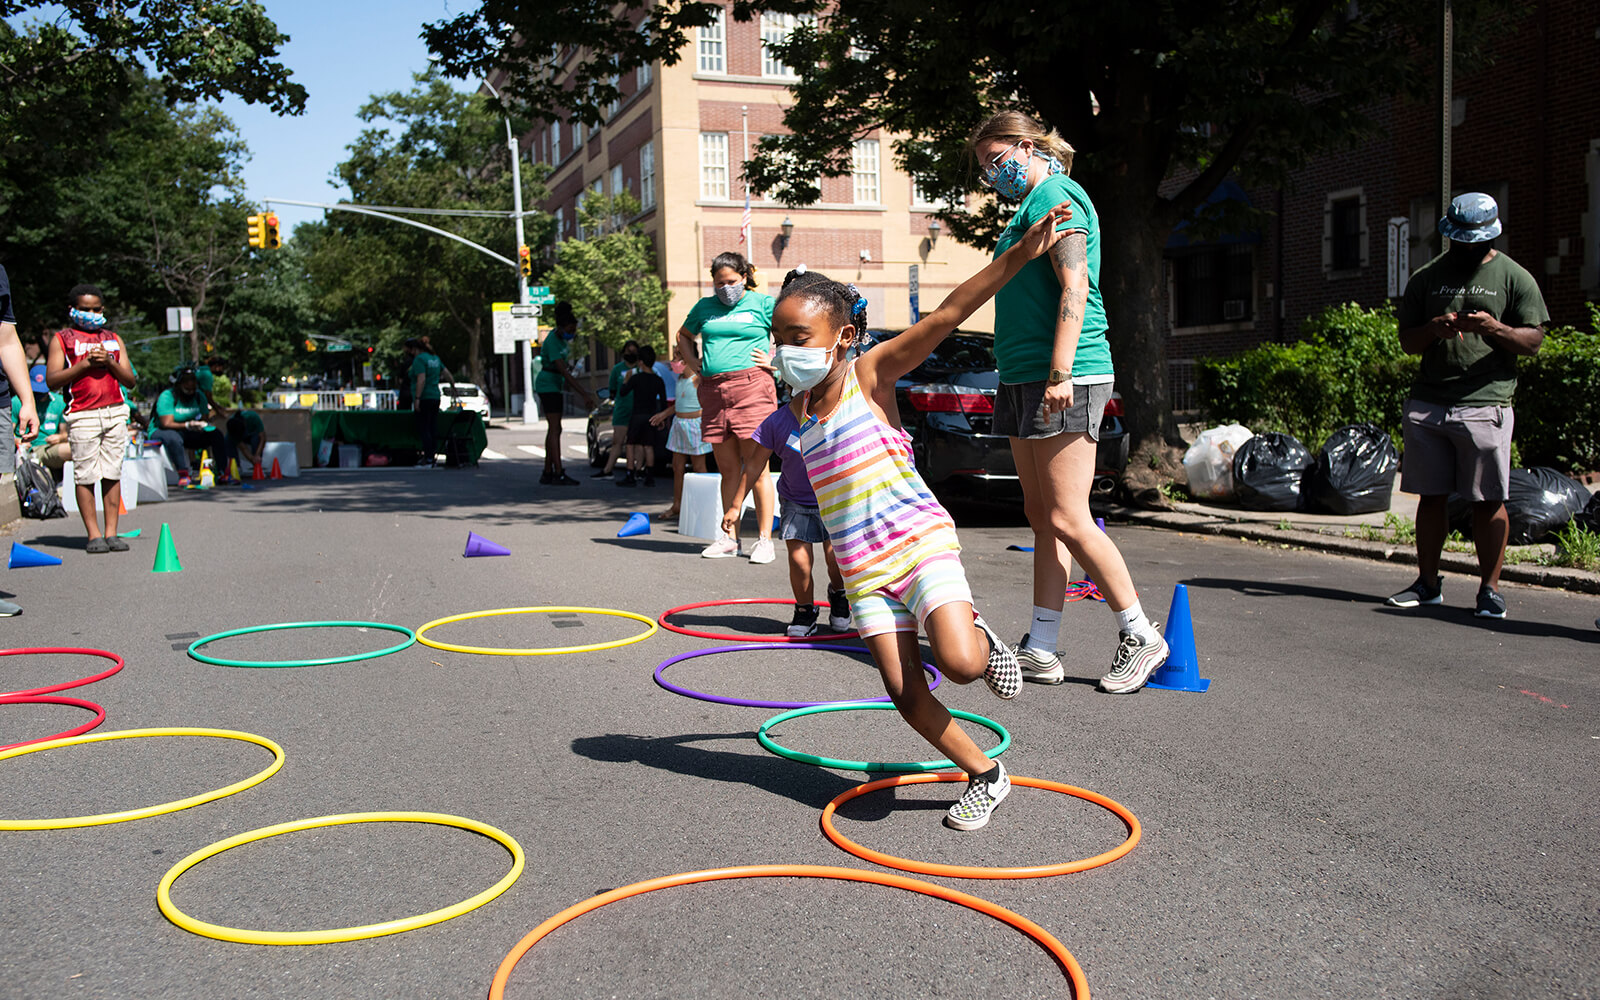 Kids safely playing at the Fresh Air Funds site in Jackson Heights, New York.